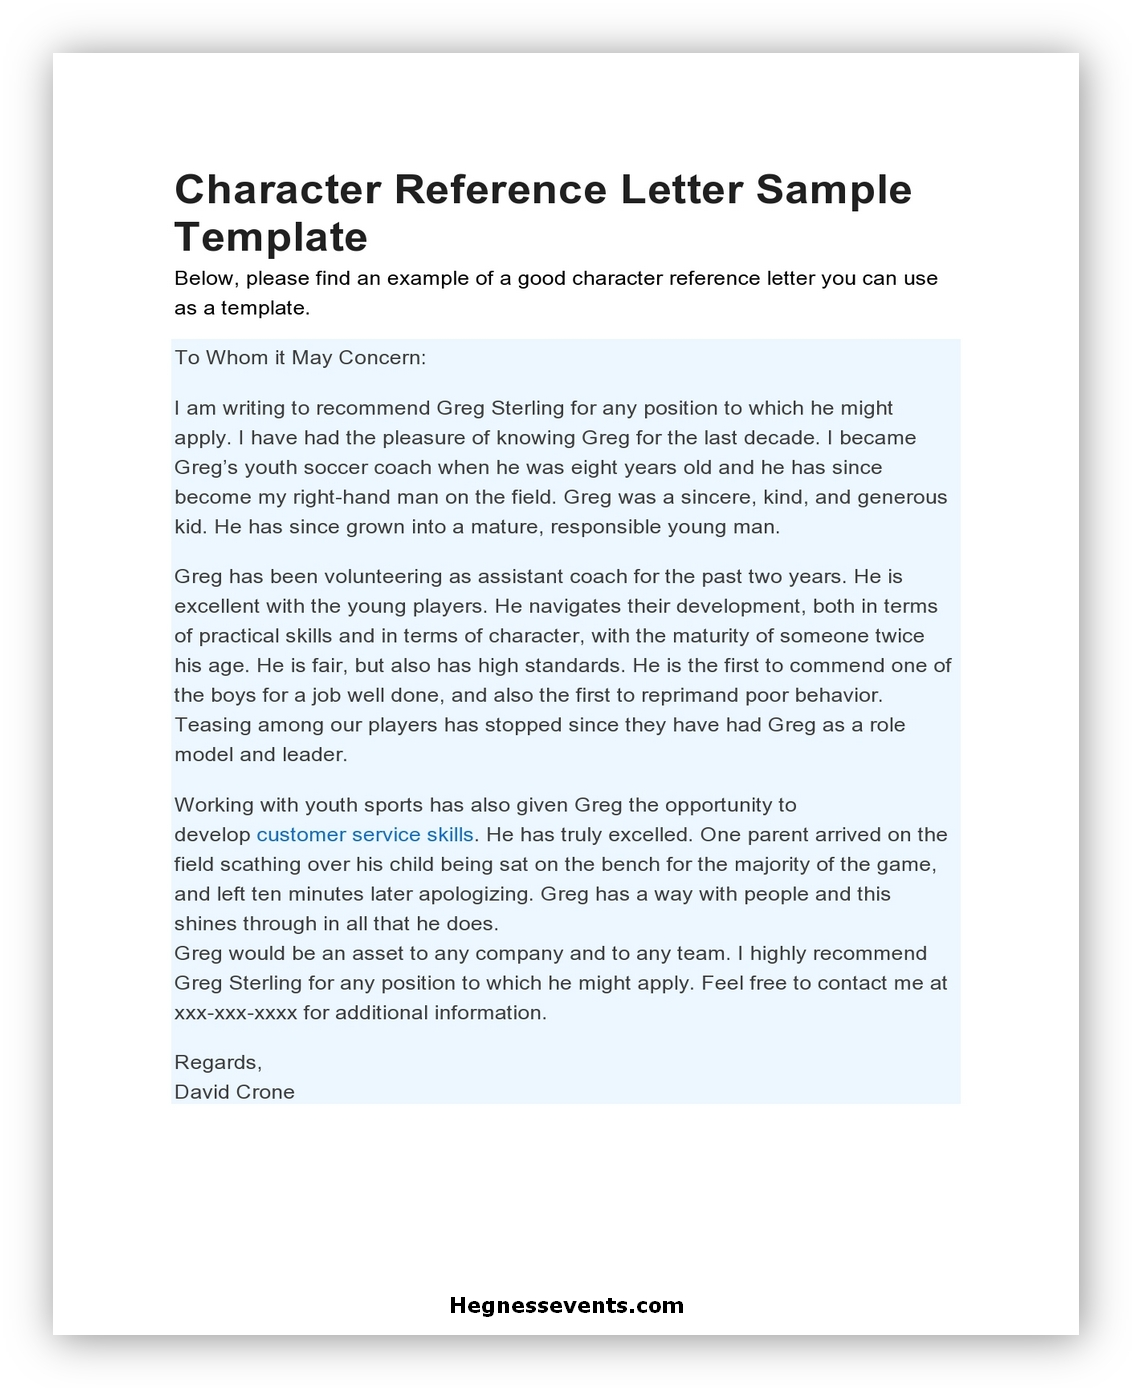 Letter of Reference Character 12